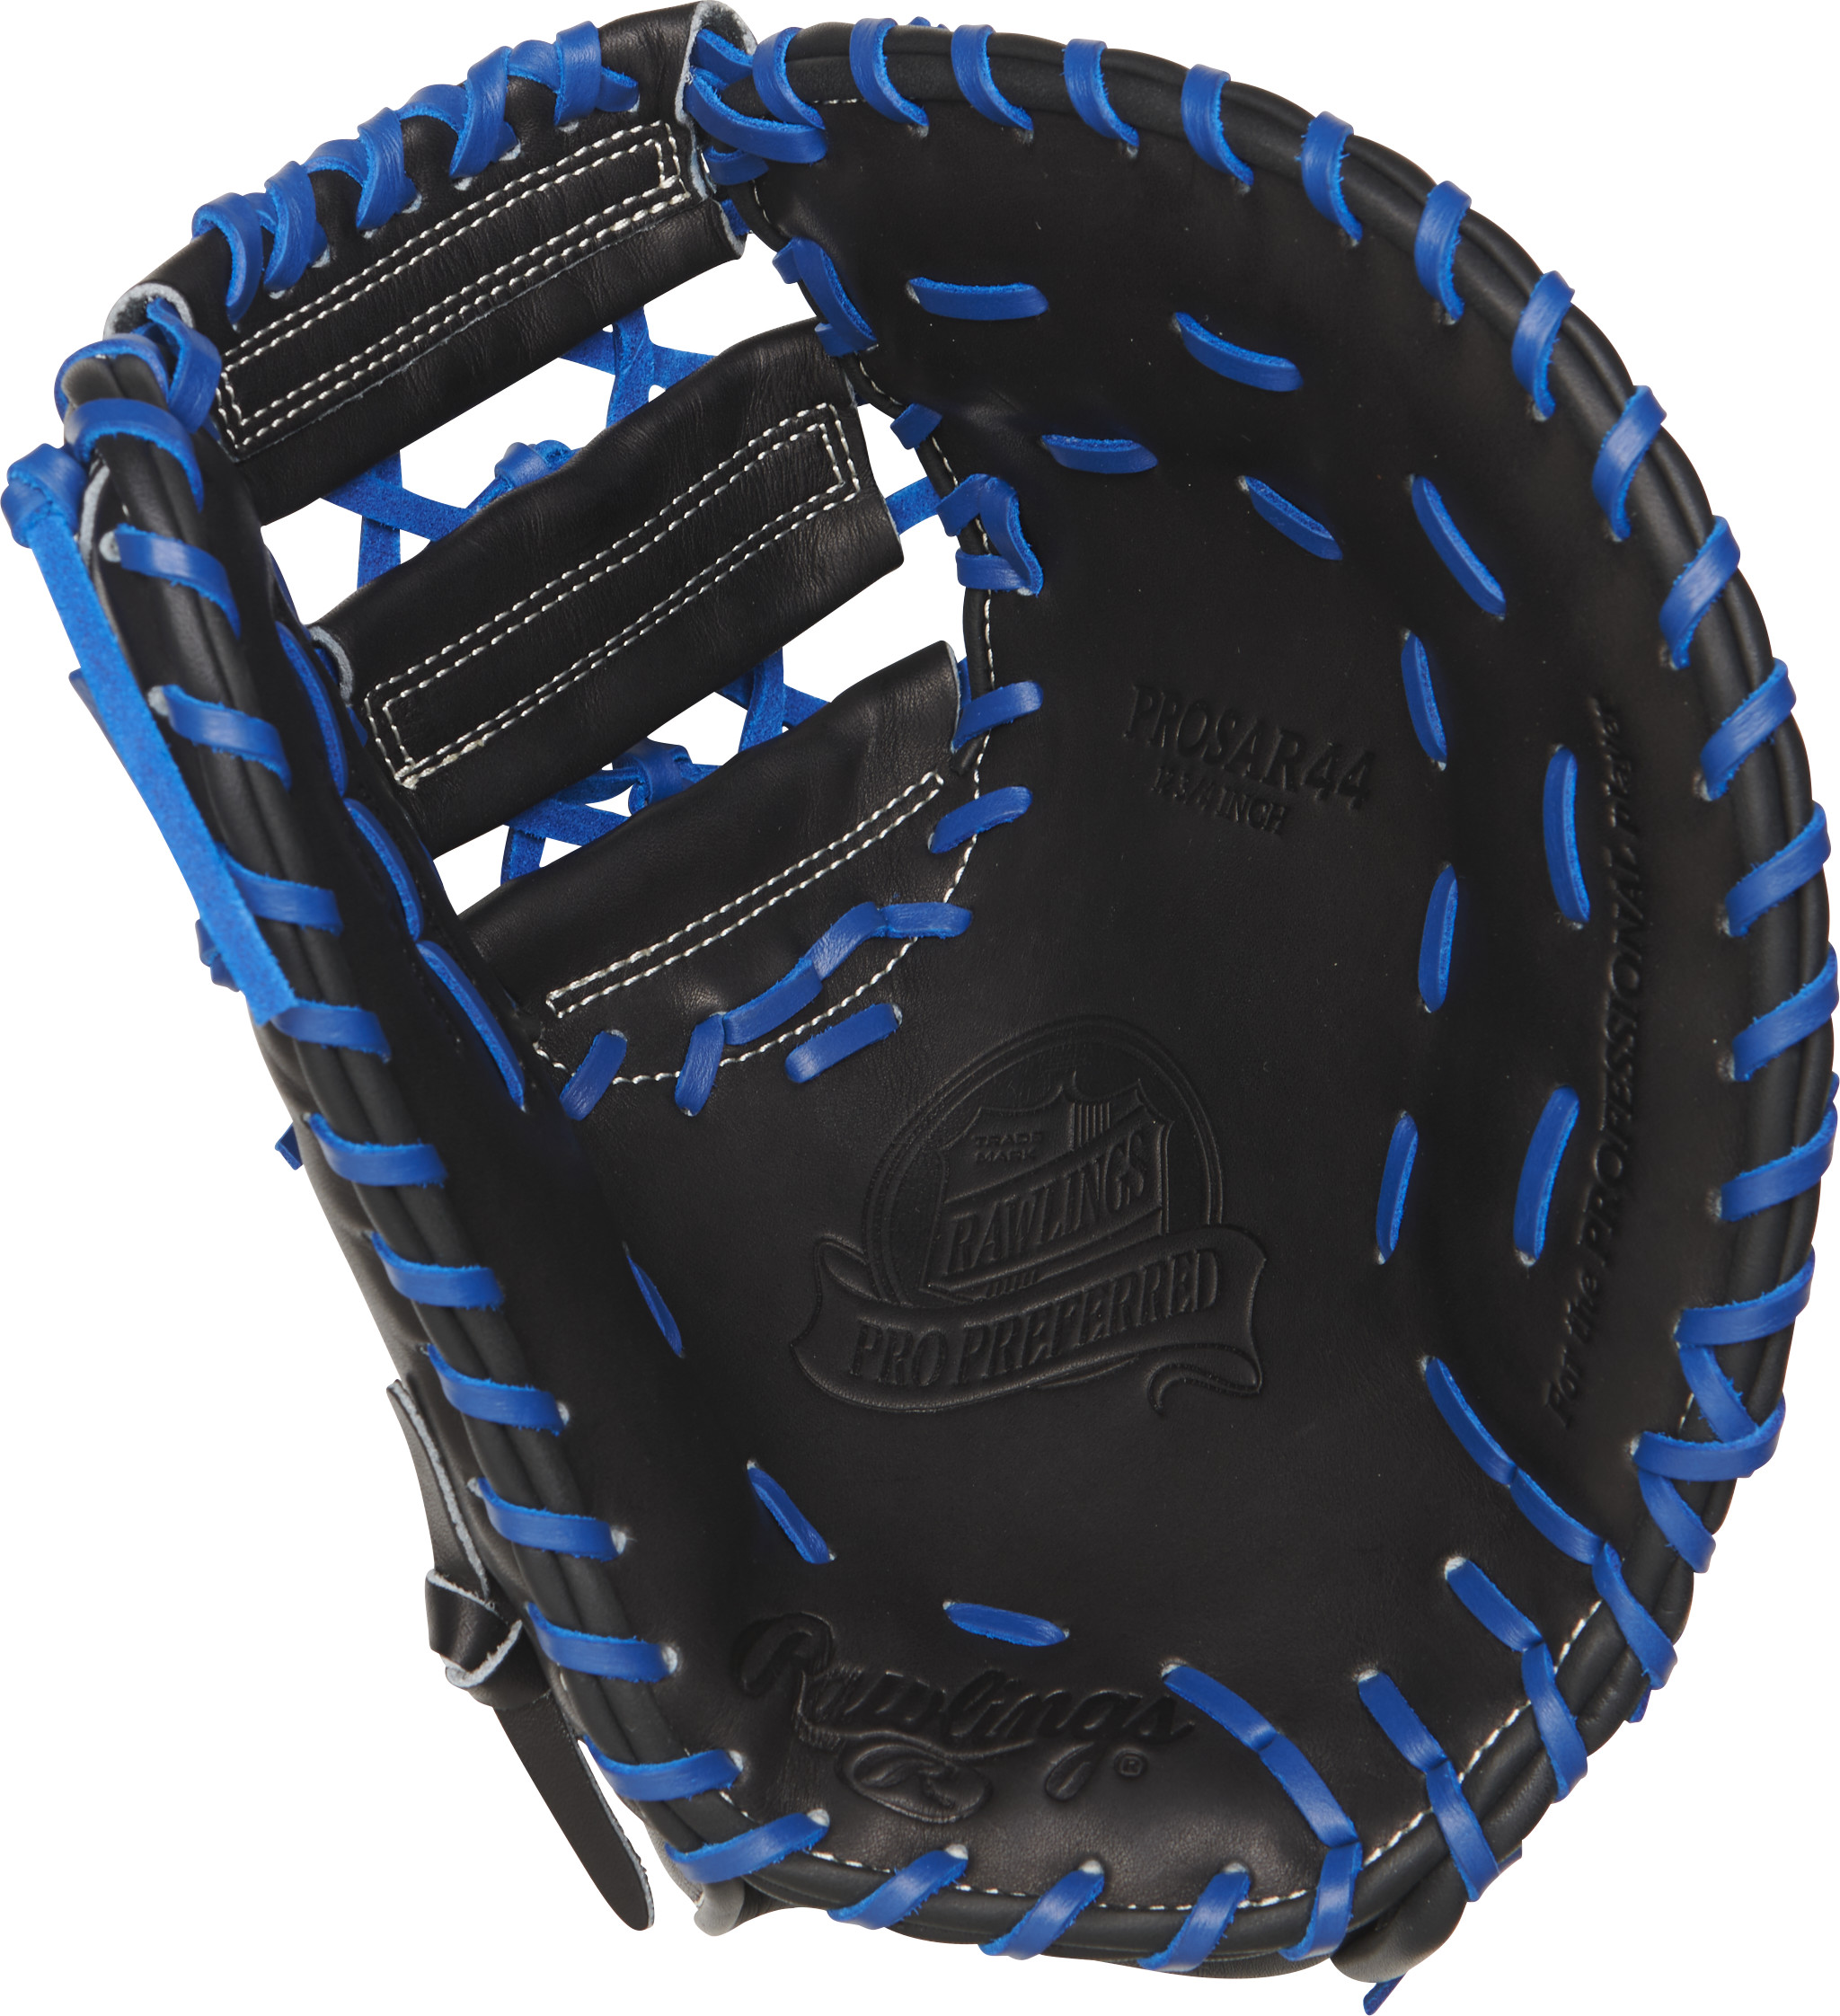 http://www.bestbatdeals.com/images/gloves/rawlings/PROSAR44-1.jpg